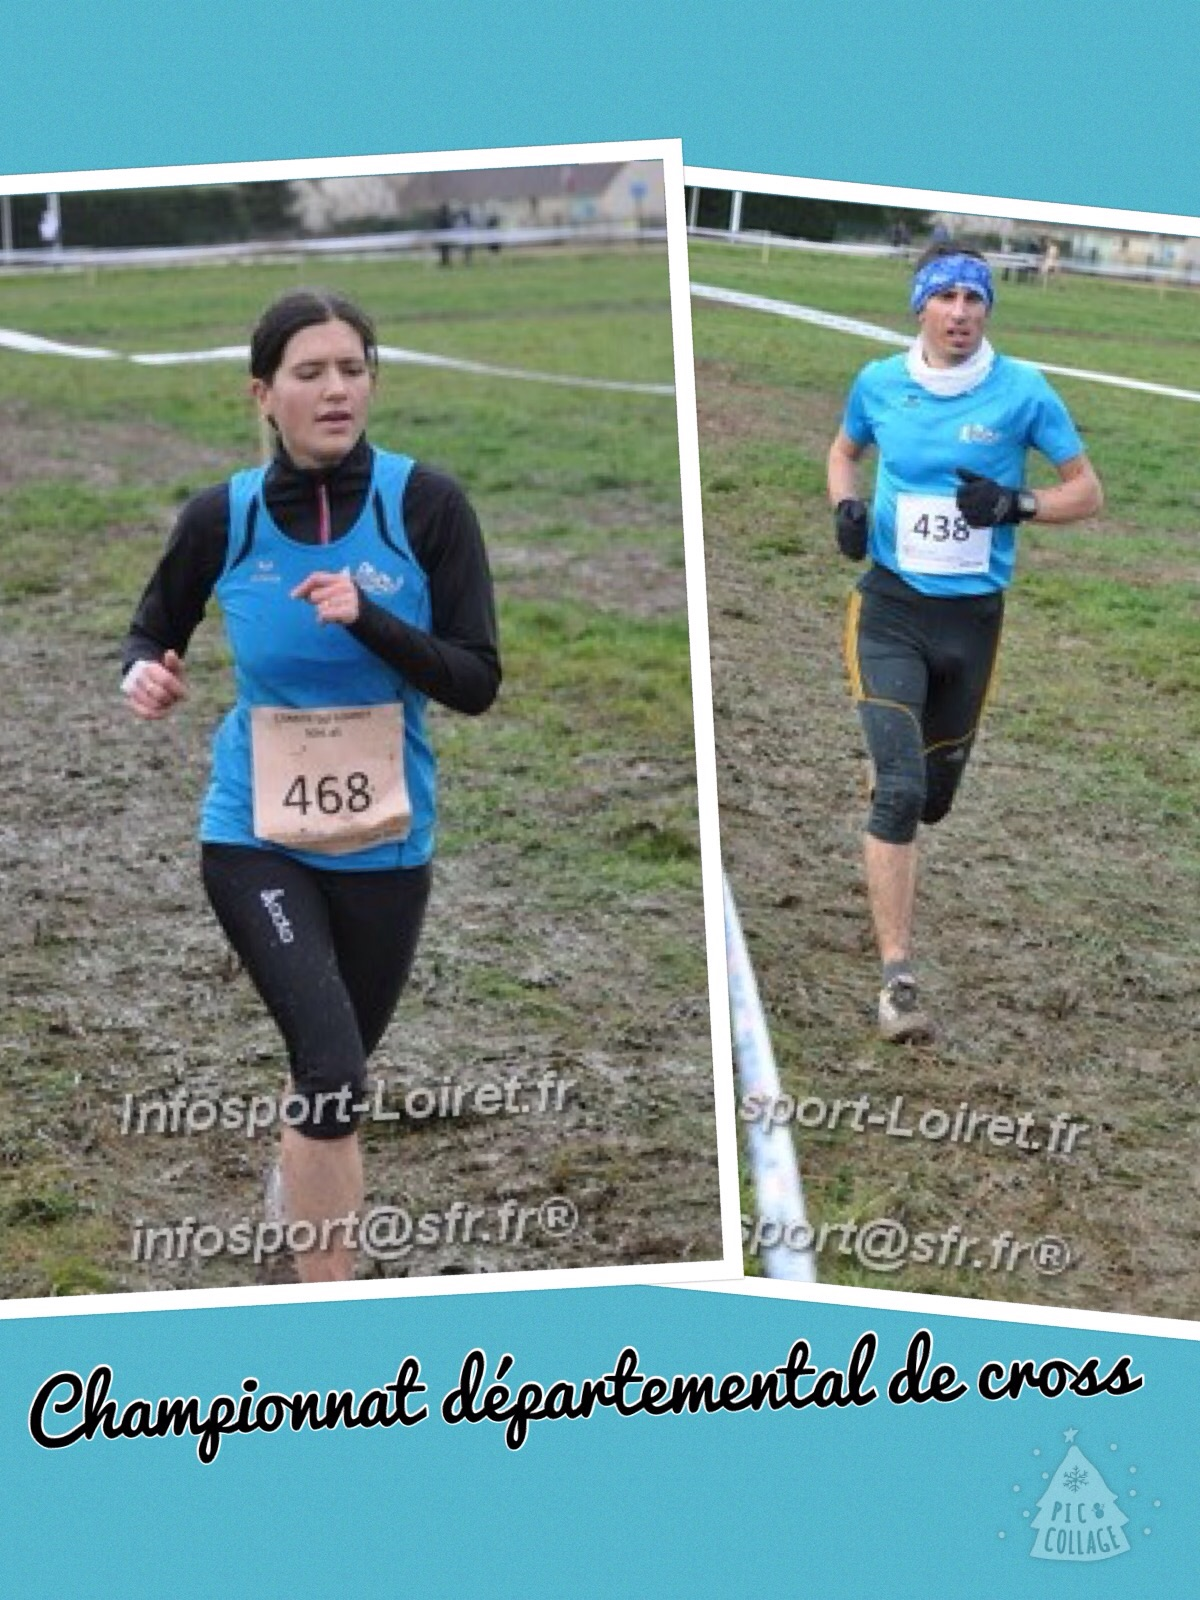 10-01-16 – Championnat départemental de cross country à Gien